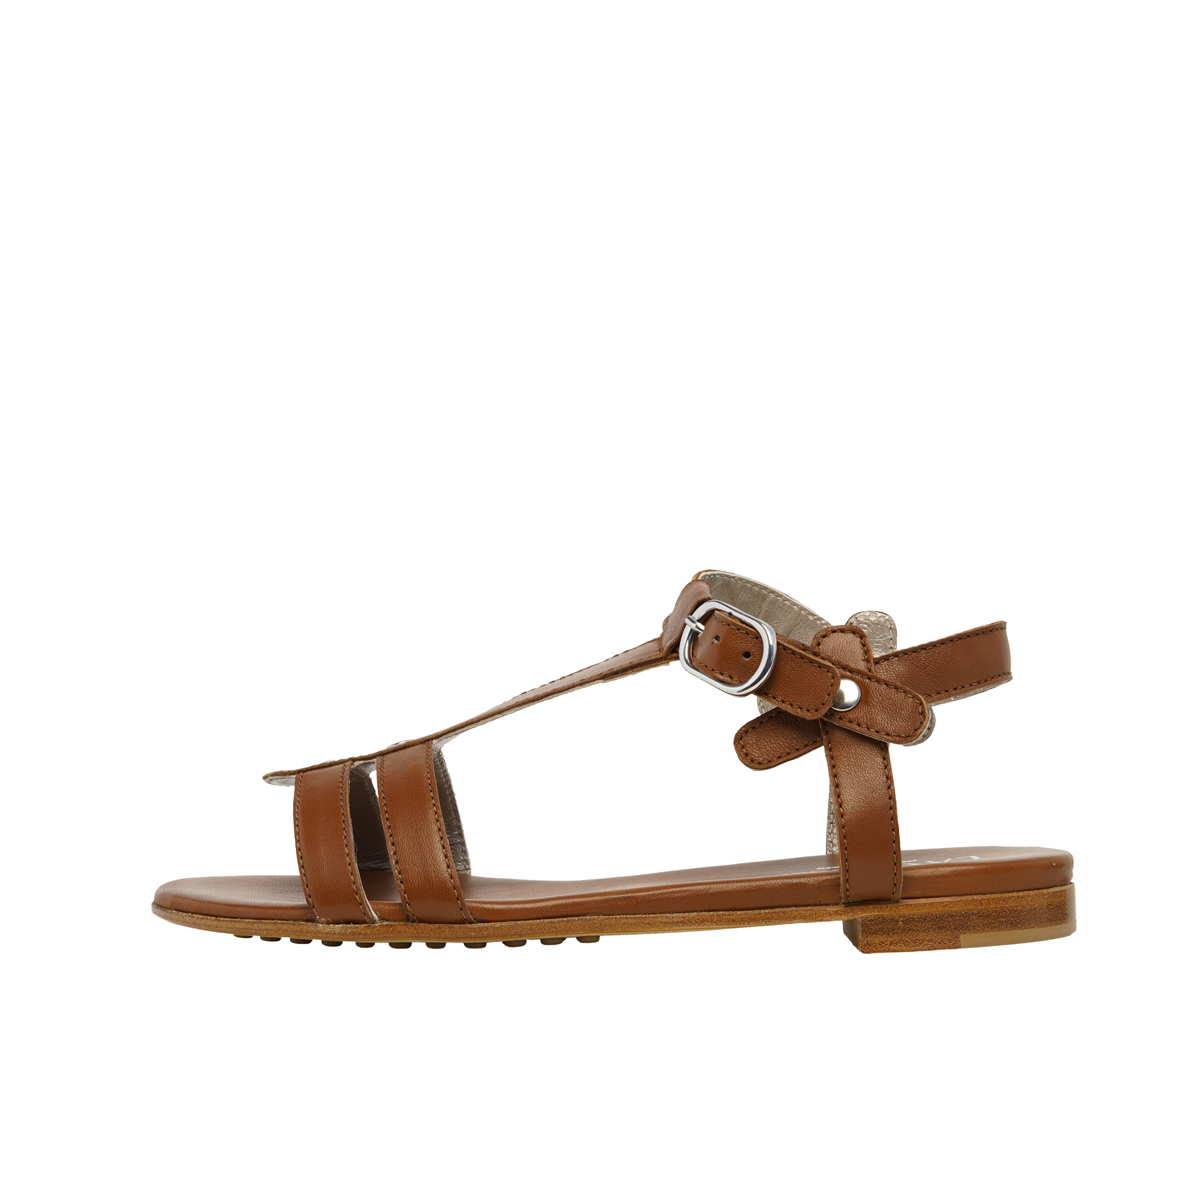 Strips Leather Sole Sandal